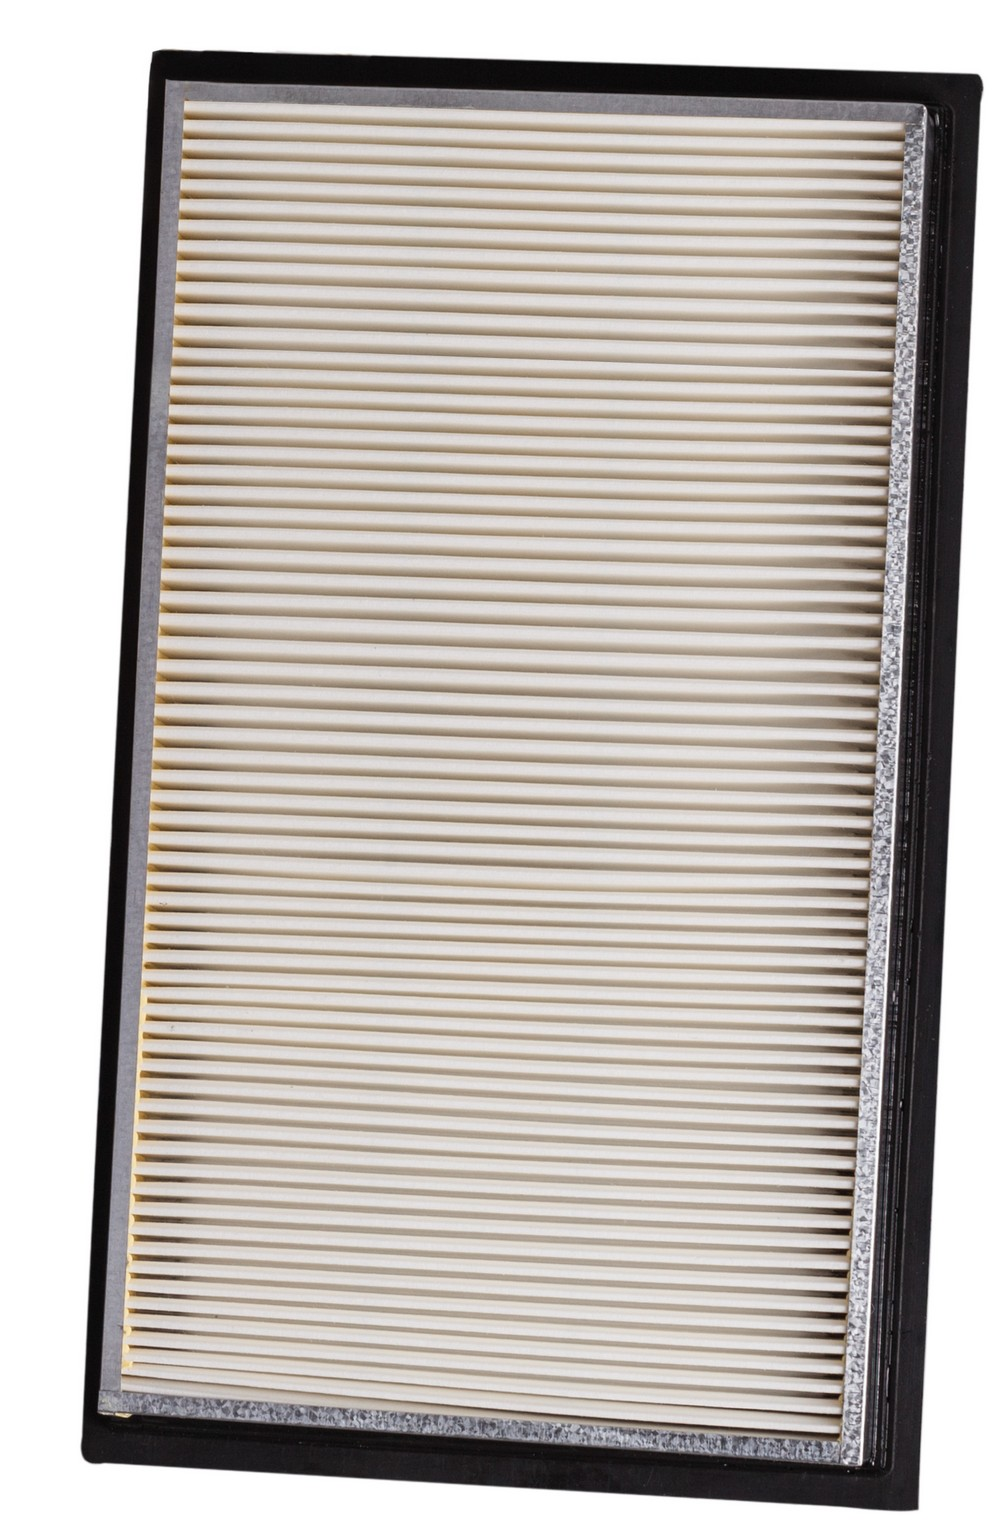 2013 Nissan Altima Air Filter PG PA4278